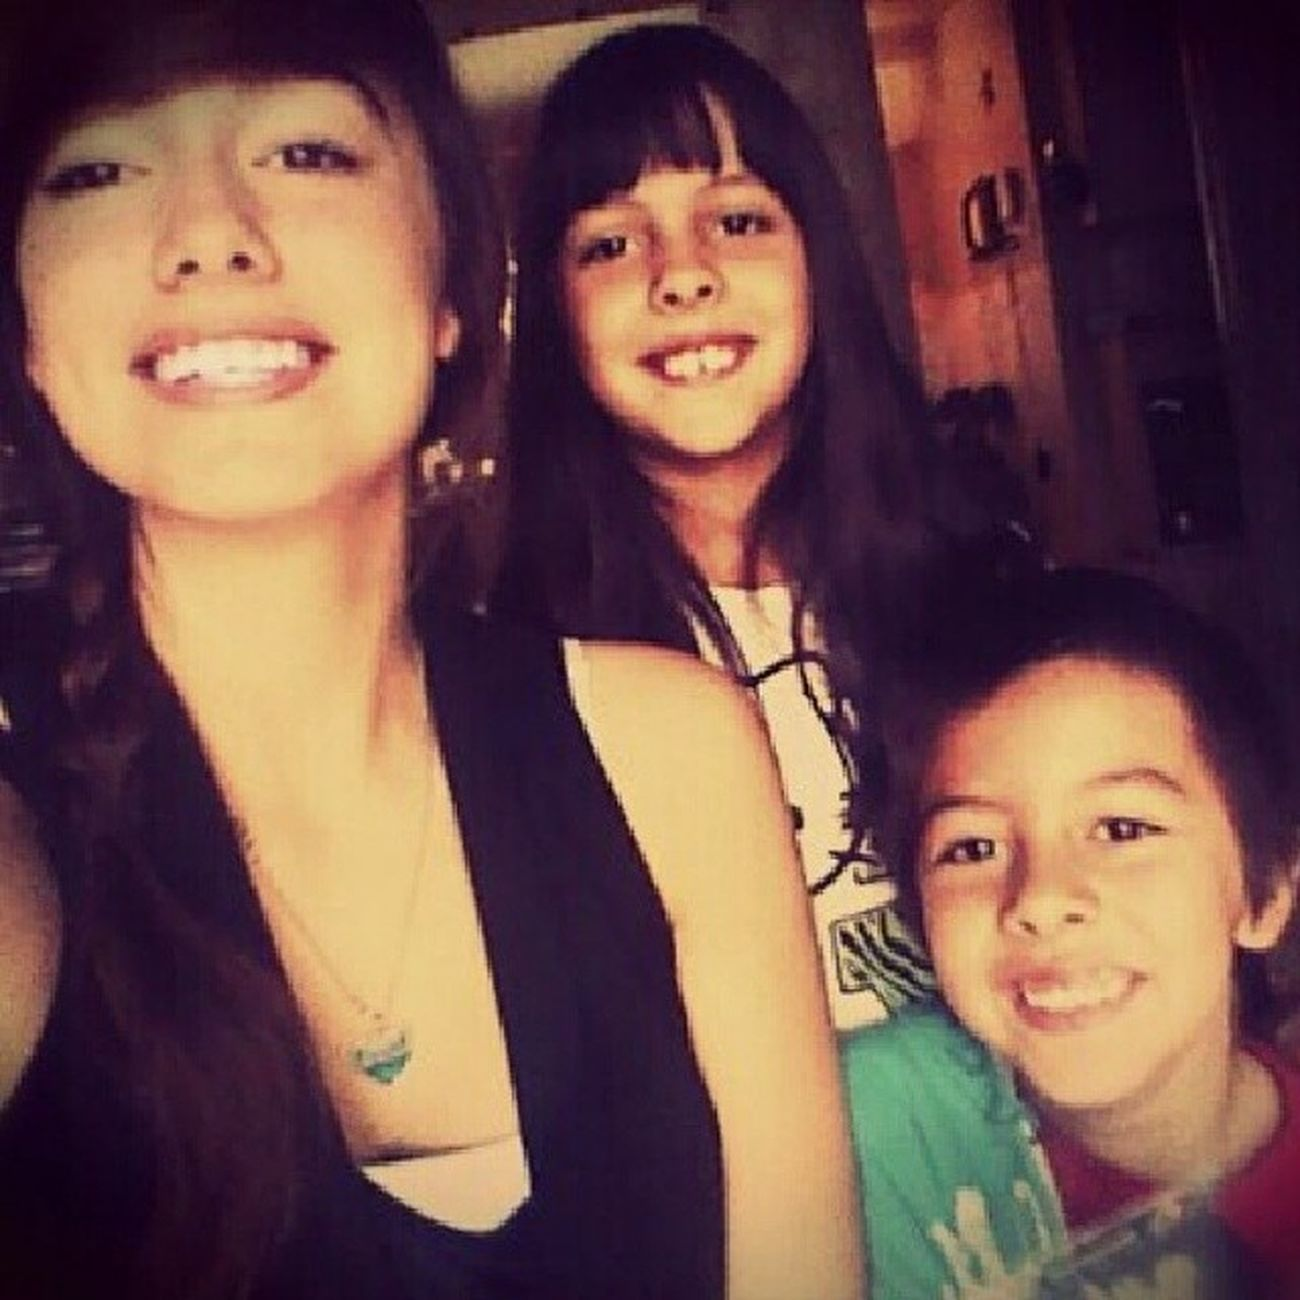 My Little Monsters && I <3333 (; Wesocute WeBored Wesingle Swaaaag kbye